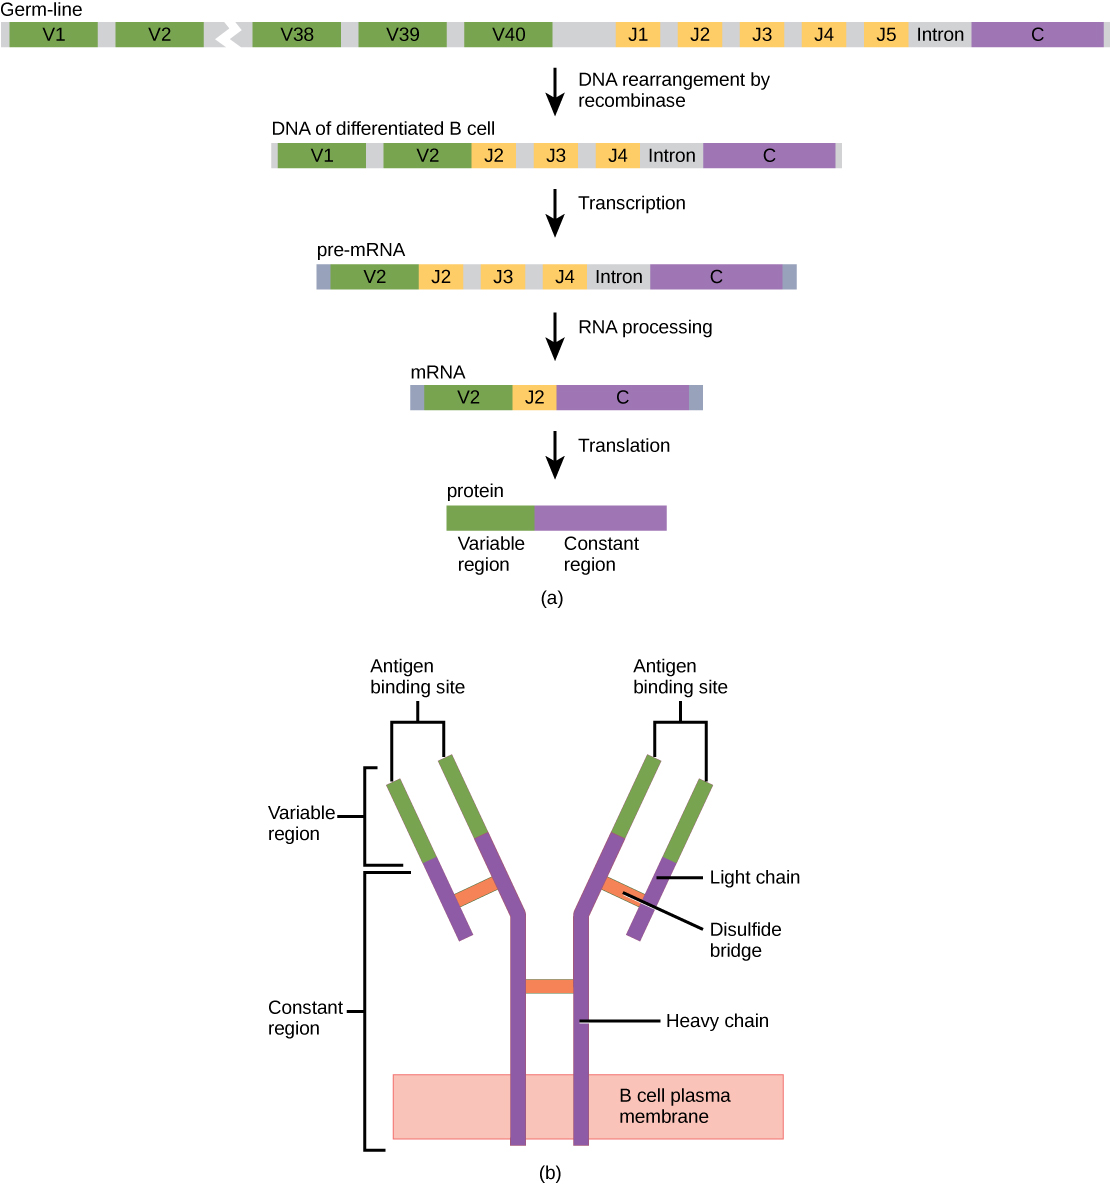 Part A shows the arrangement of gene segments encoding antibody light chains in a germ line B cell. The segment contains forty consecutive V regions, named V 1 through V 40, five consecutive J regions named J 1 through J 5, and a constant region. J5 and the constant region are separated by an intron. D N A recombinase splices out the portion of D N A containing segments V 3 through J 1, resulting in a differentiated B cell. The gene is transcribed into pre R N A. R N A processing splices out all but the V 2, J 2 and C regions. Translation results in a protein with a variable region formed from the V 2 and J 2 segments, and a constant region formed from the C region. The light chain joins the heavy chain to form a Y shaped antibody.